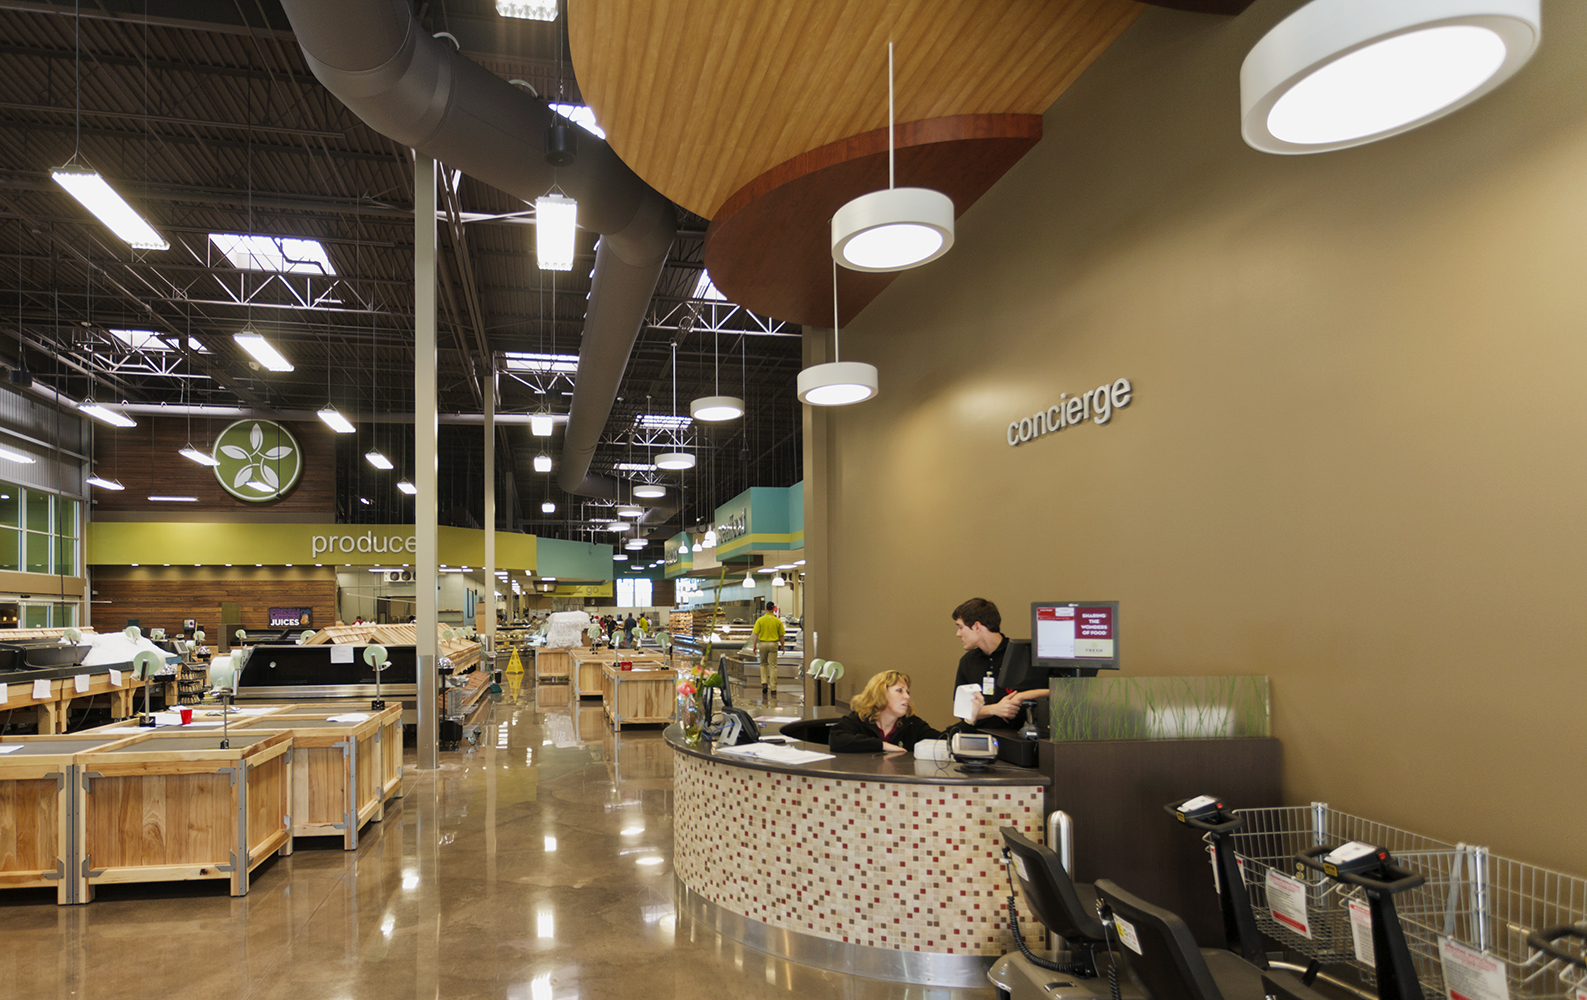 Omnience fixtures are good for retail lighting designs, seen here above a checkout area in a modern grocery store.